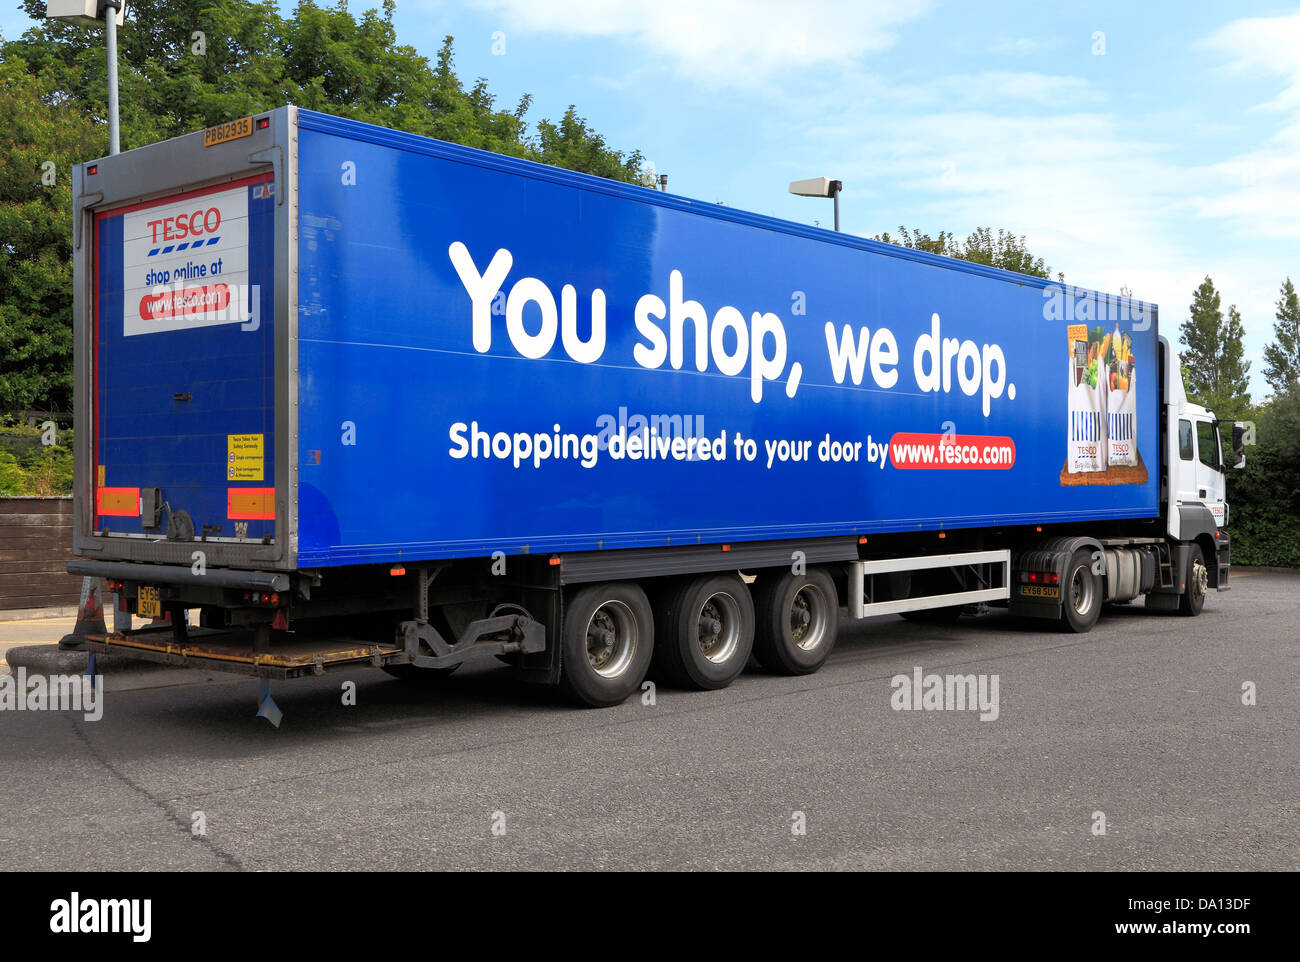 Tesco Online Shopping vehicle, transporter 'you shop, we drop', delivery truck, lorry, England UK - Stock Image